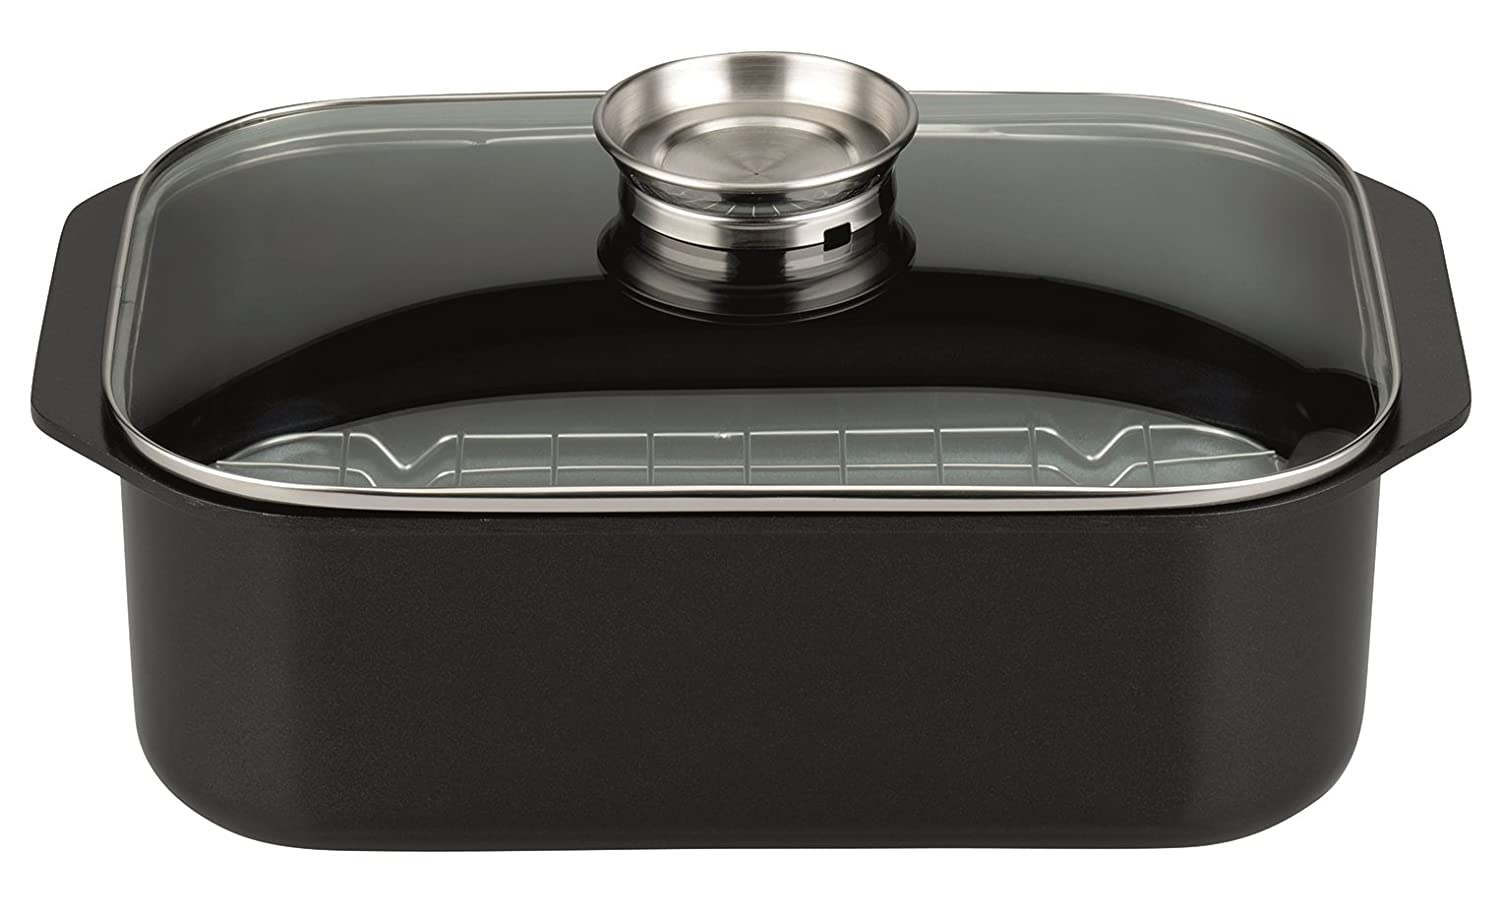 ELO Pure Trend Induction Cast Aluminum Kitchen Cookware Roaster with Aerating Funnel Lid and Non-Stick Scratch Resistant Coating, 16-inch